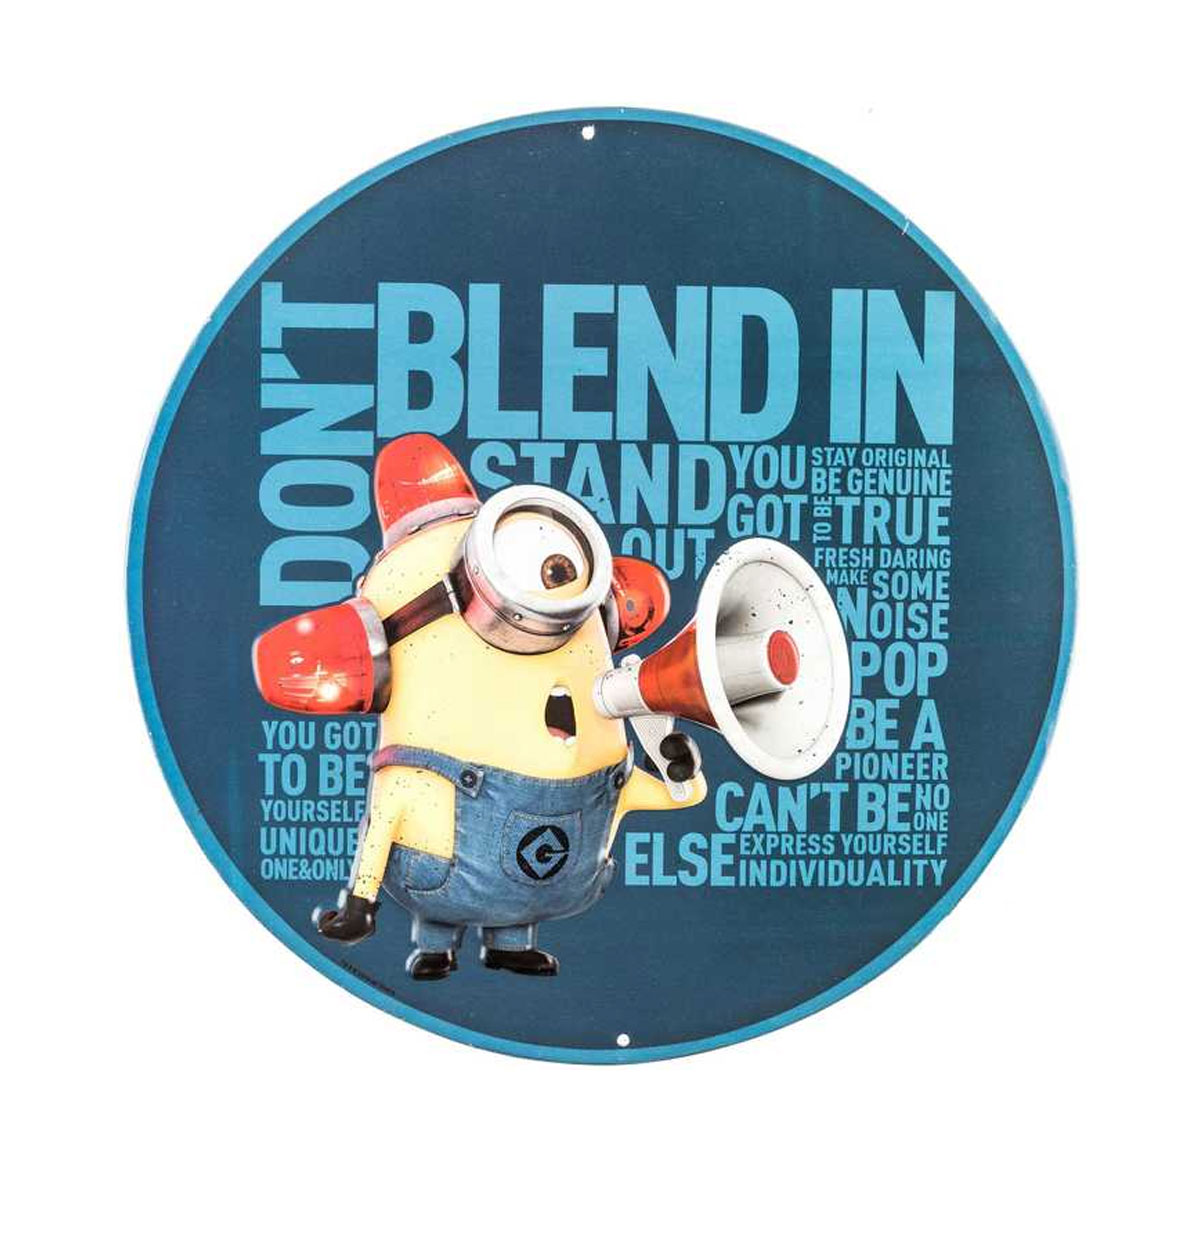 Don't Blend In Minion Rond Metalen Bord